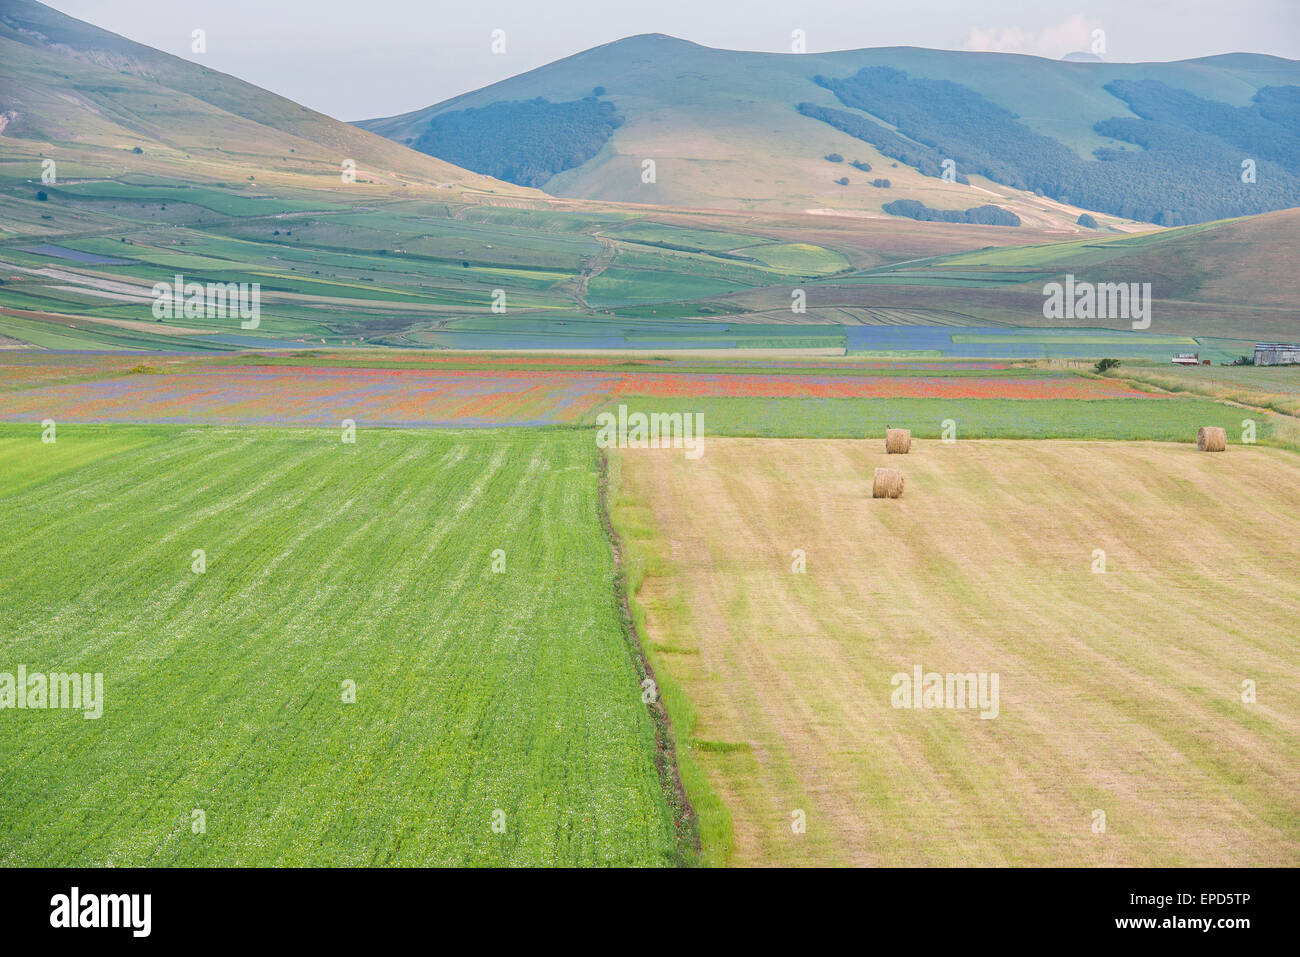 Colored fields with bales in Piano Grande, Monti Sibillini NP, Umbria, Italy - Stock Image